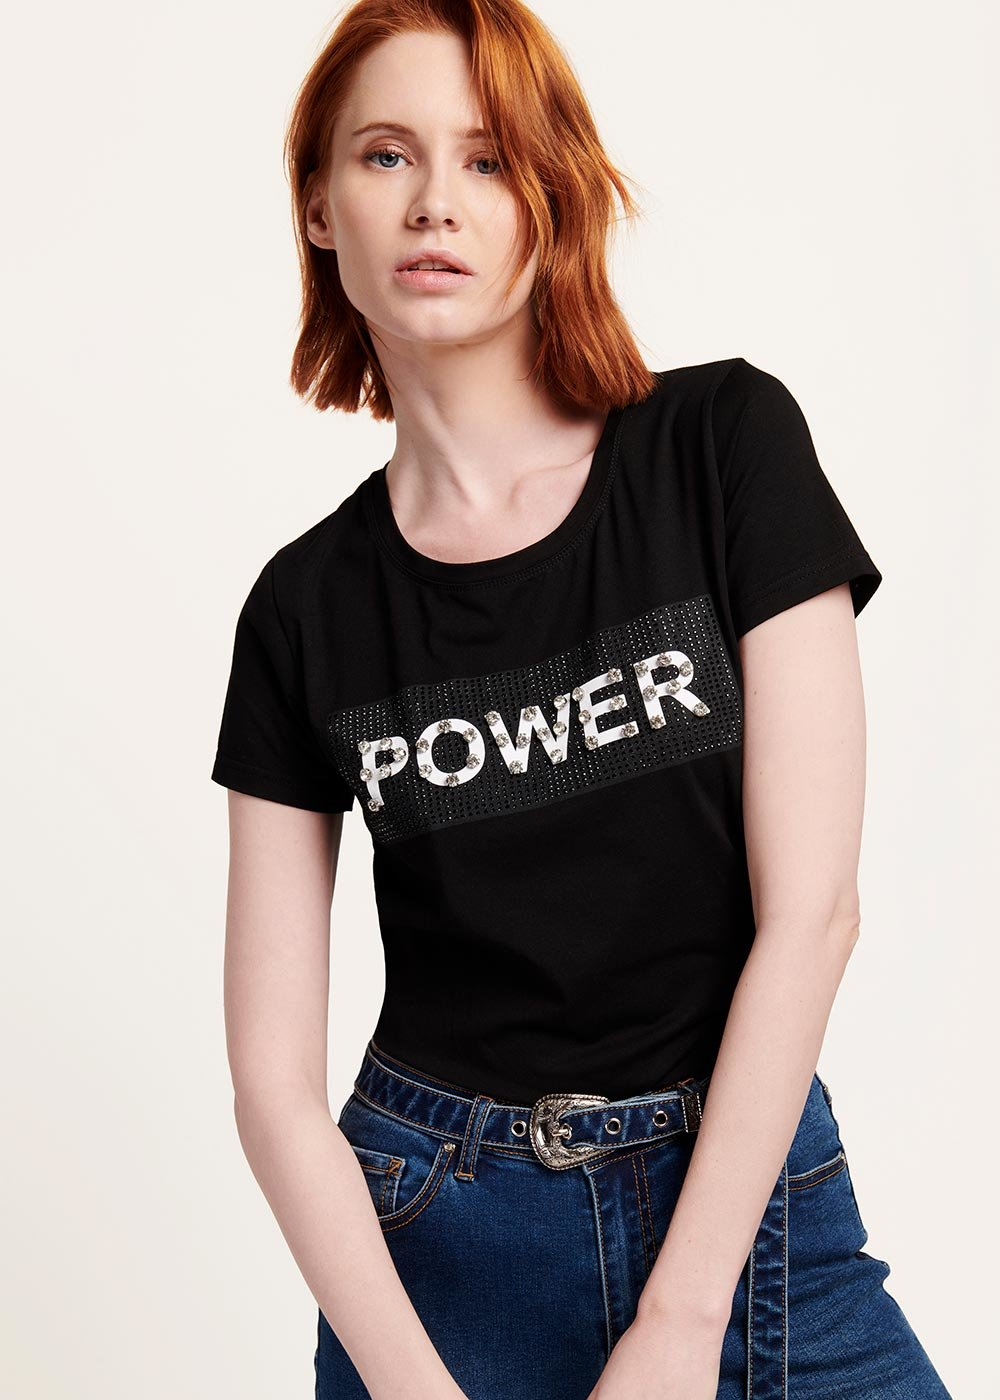 Sybilla T-shirt with front print - Black / White - Woman